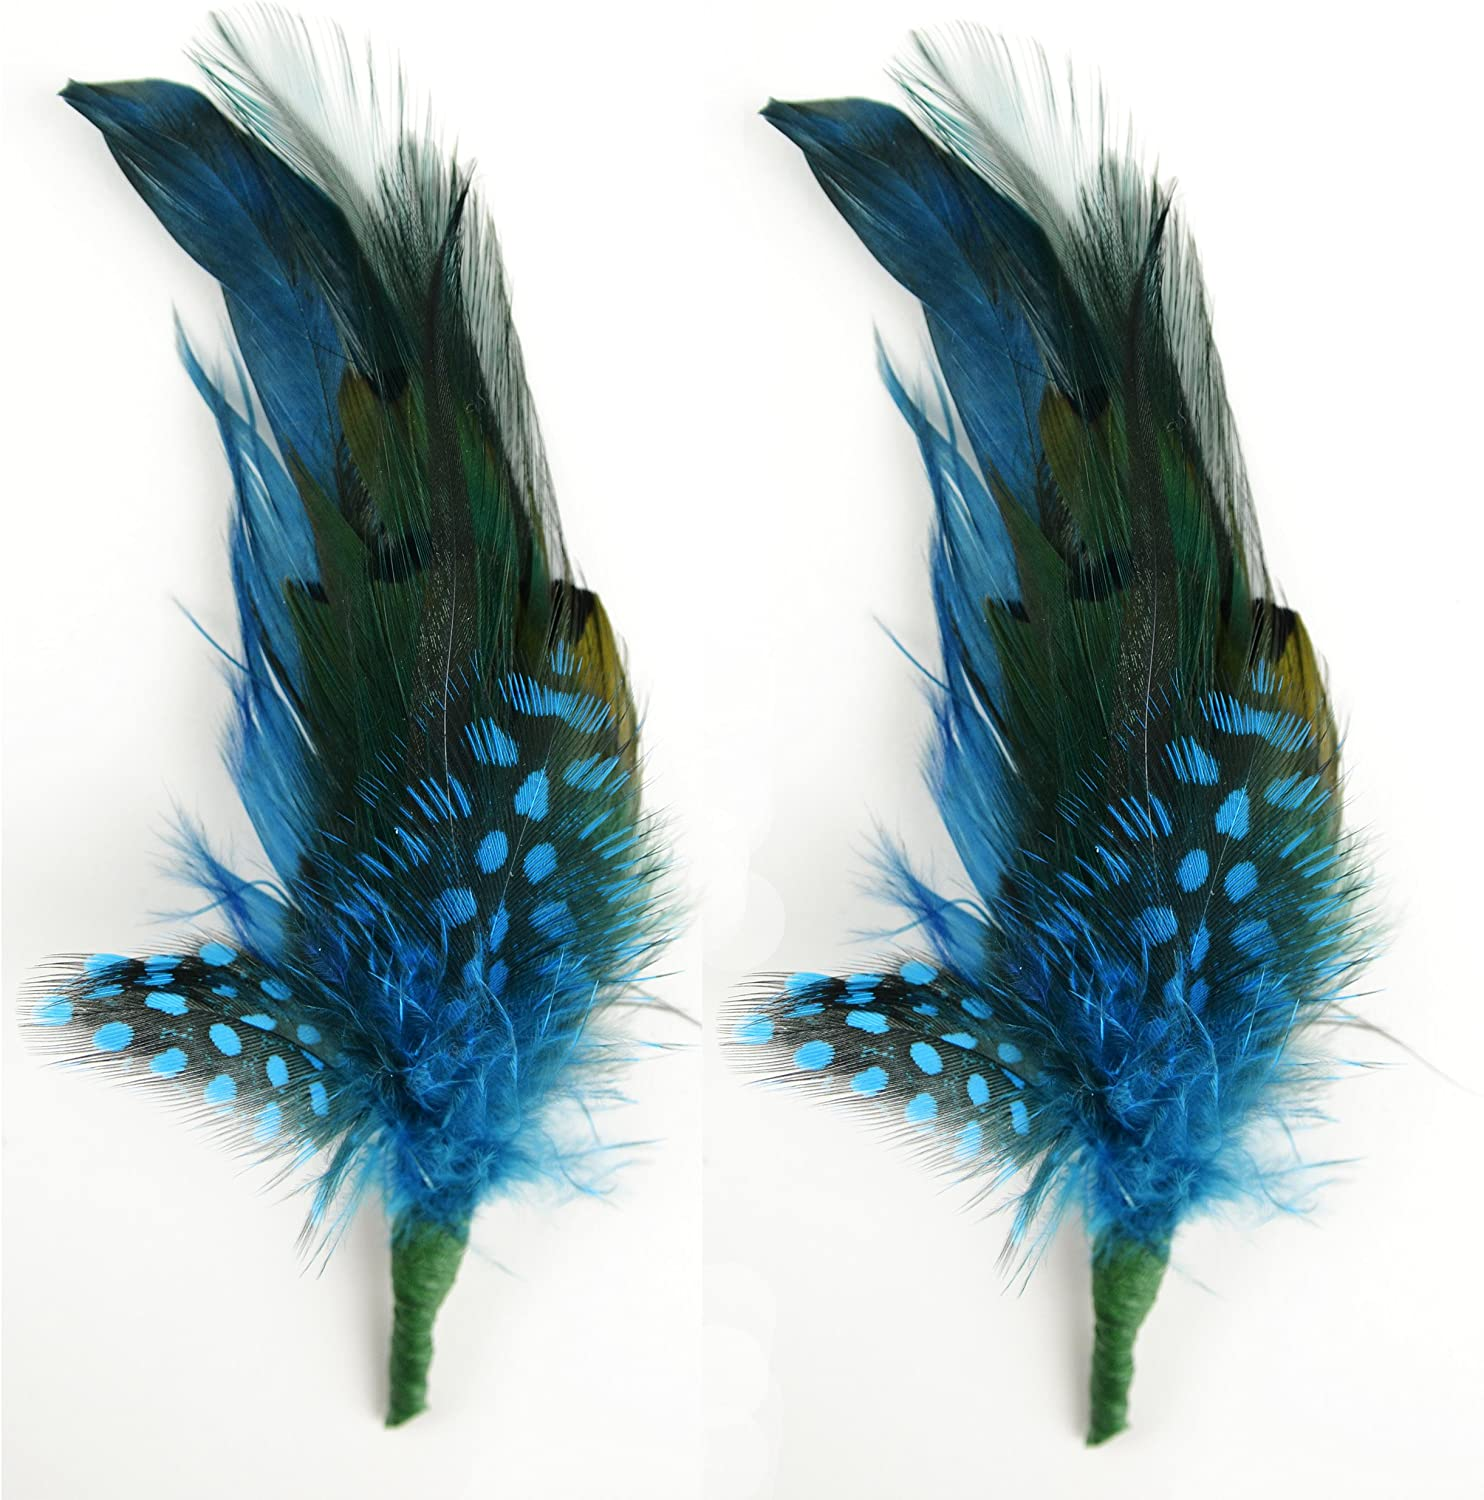 Touch of Nature 2-Piece Feather Pick with Nylon Loop for Arts and Crafts, 6 to 7-Inch, Teal/Turquoise